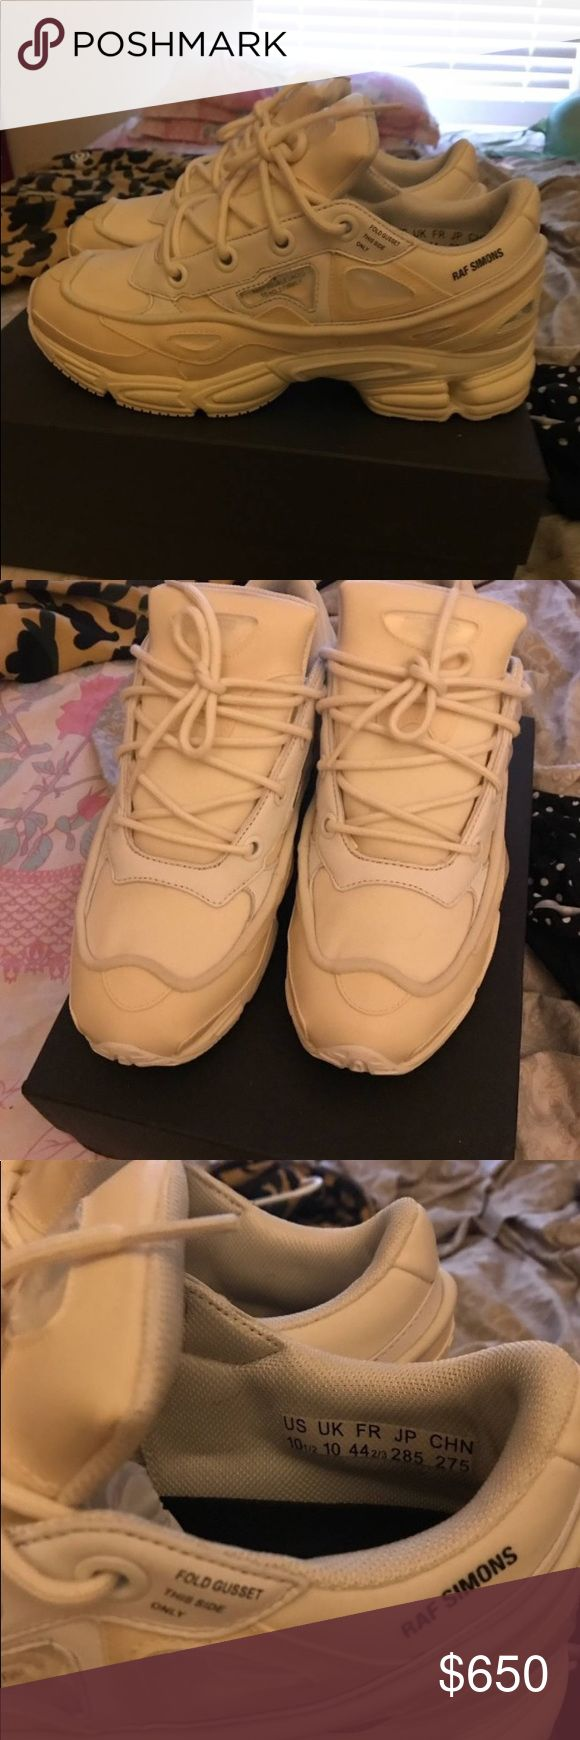 Raf Simons Ozweego Bunny 2 10/10 condition DS PayPal only posh takes too much of a fee :/ text 2543834586 for more info Raf Simons Shoes Sneakers